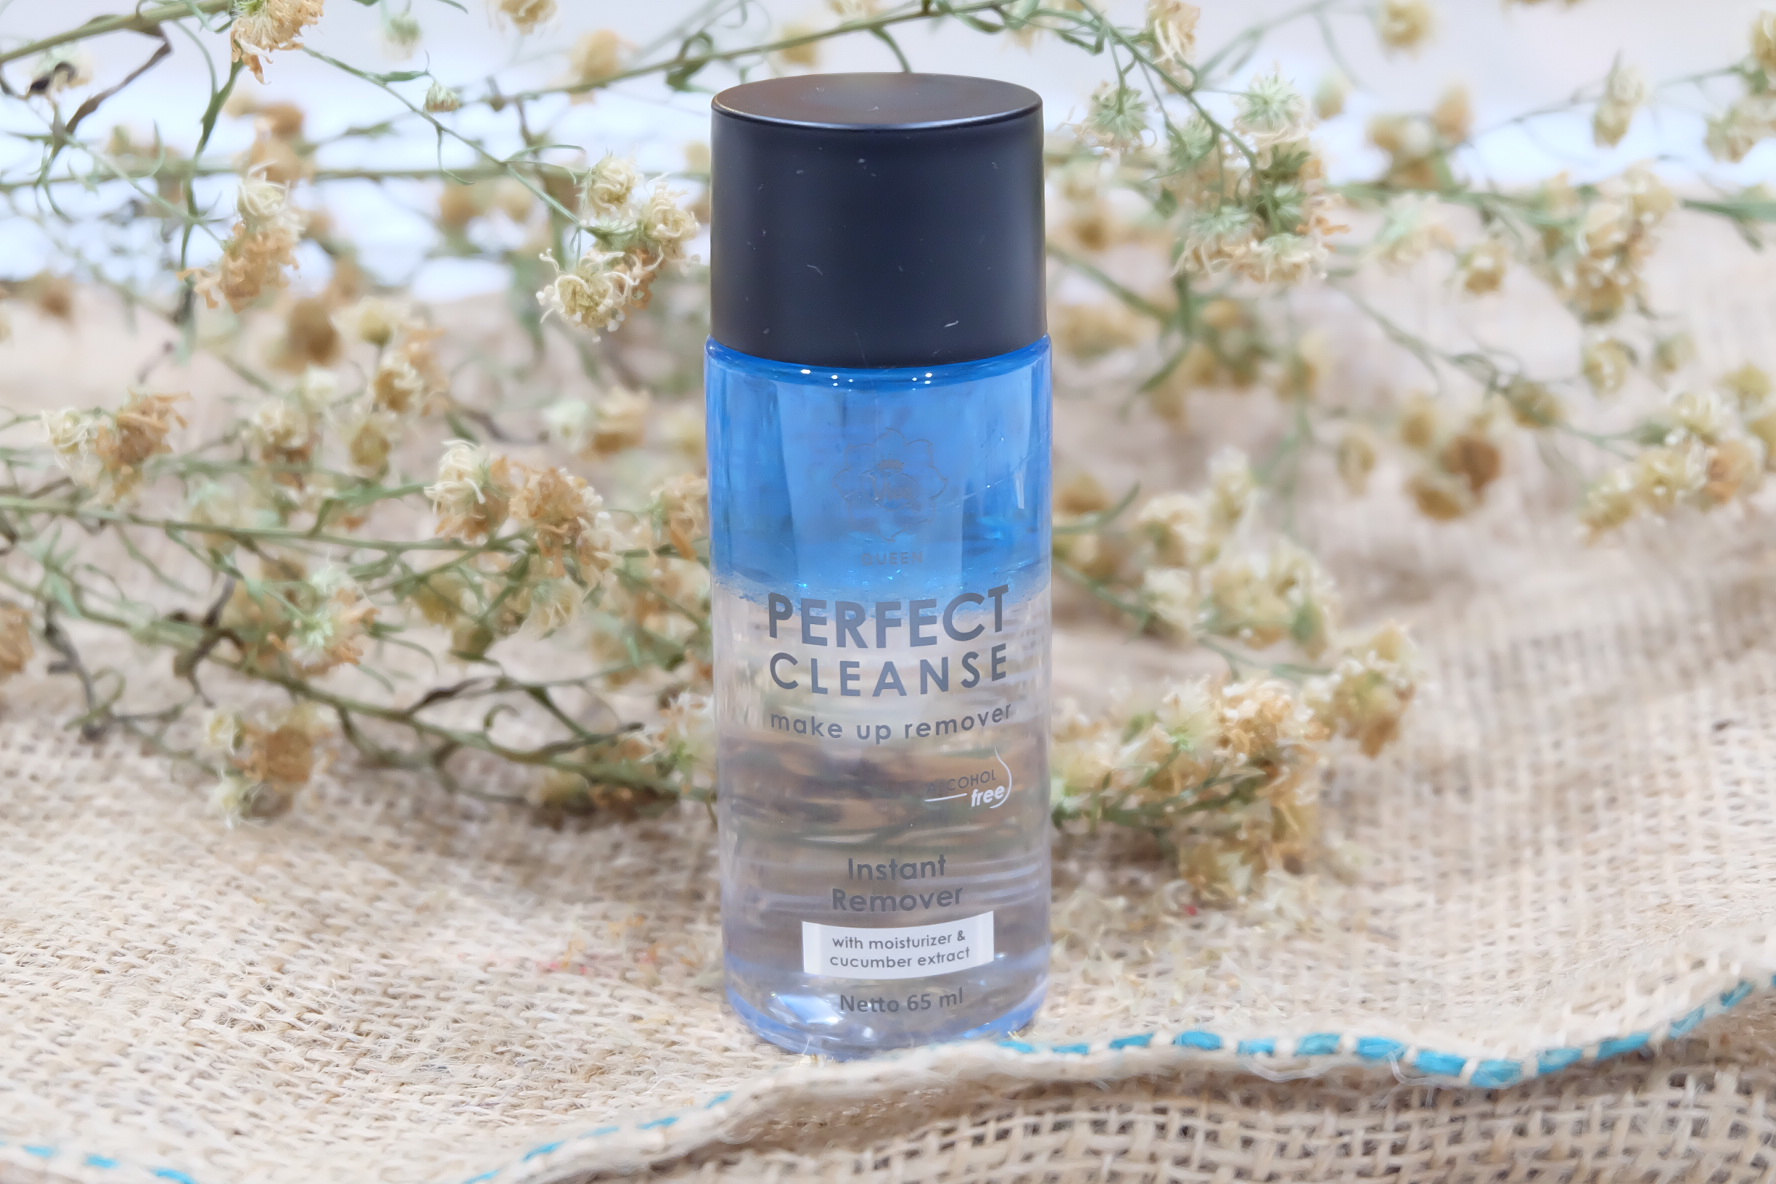 [Review] Viva Queen Perfect Cleanse Make Up Remover